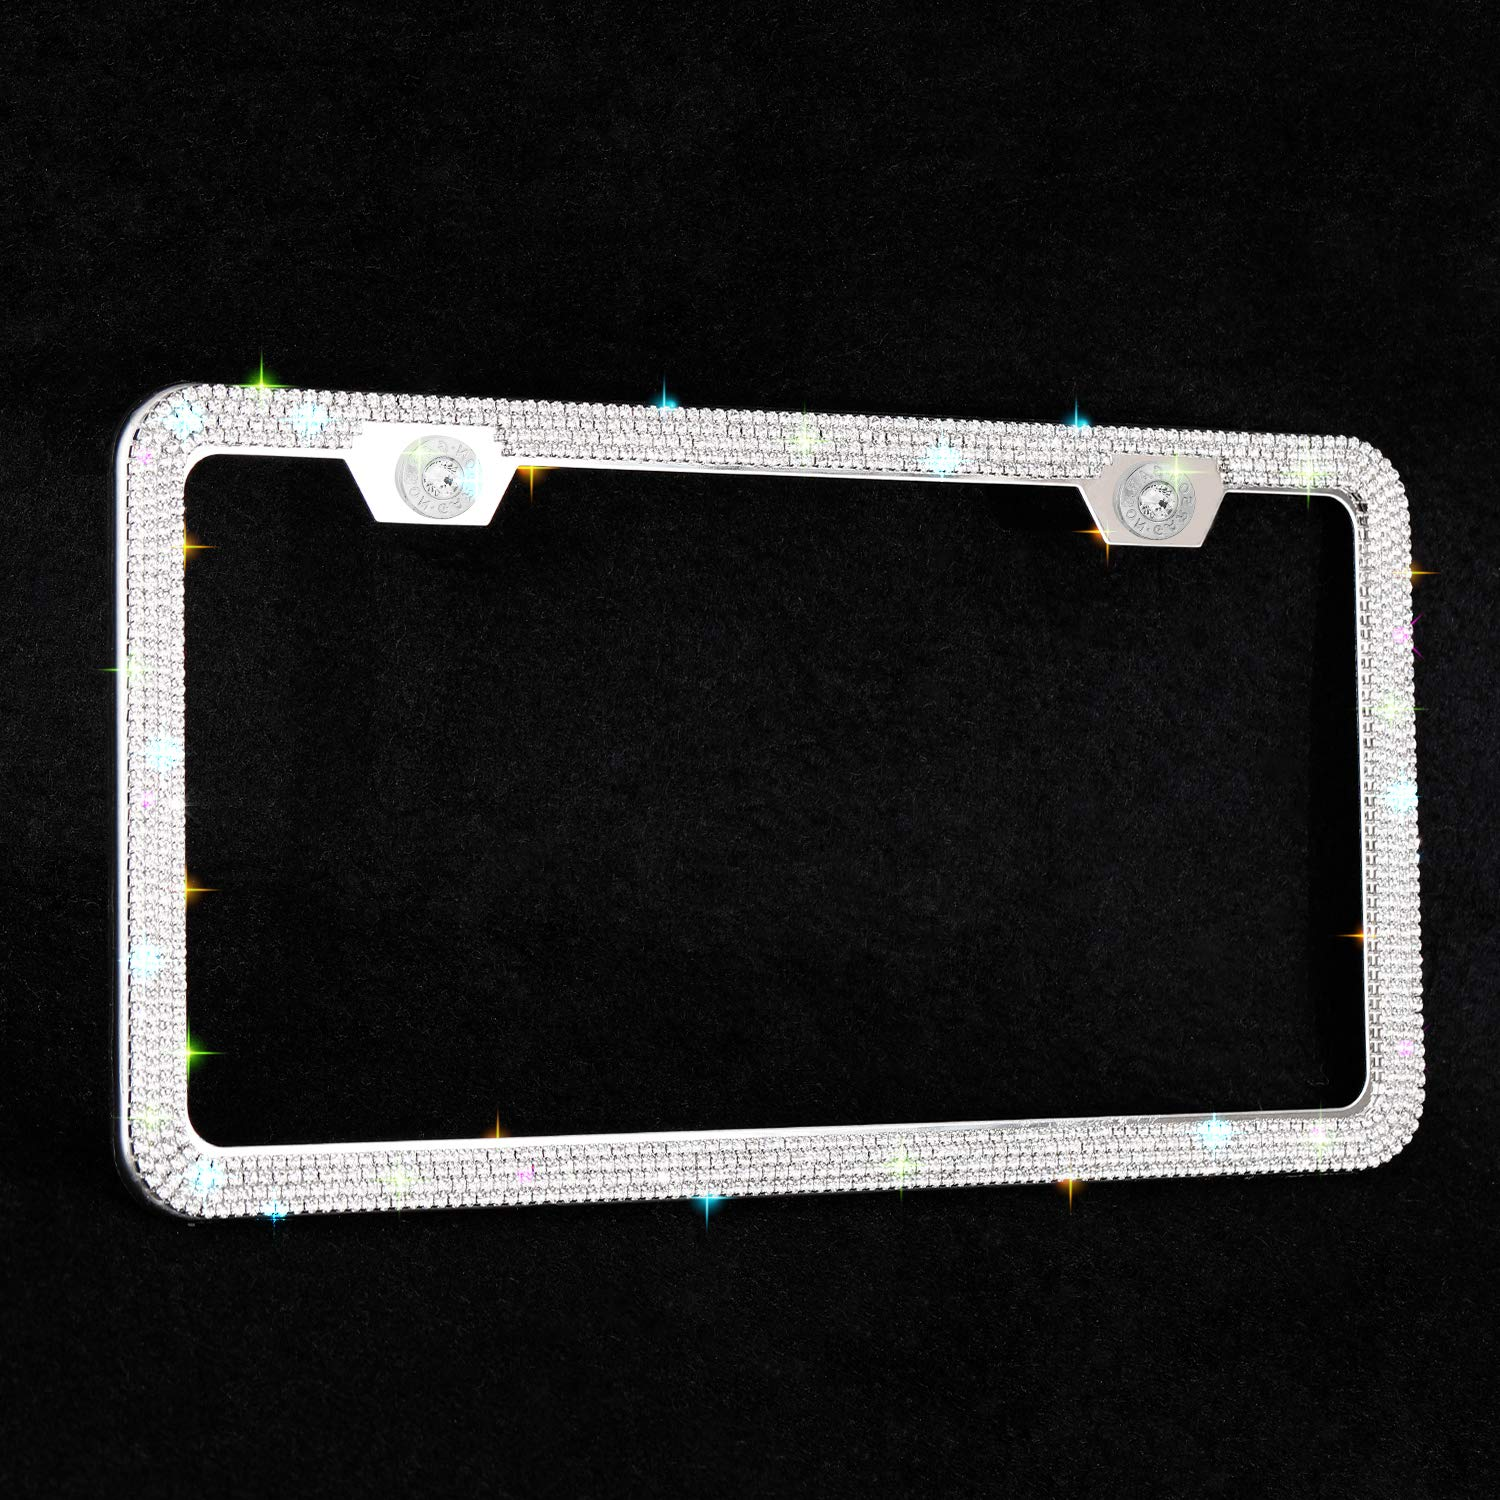 Luxury Handmade Waterproof Glitter Rhinestone Premium Stainless Steel Licence Plate Front Back License Indeedbuy Sparkle Crystal Bling Car Thin Border License Plate Frame